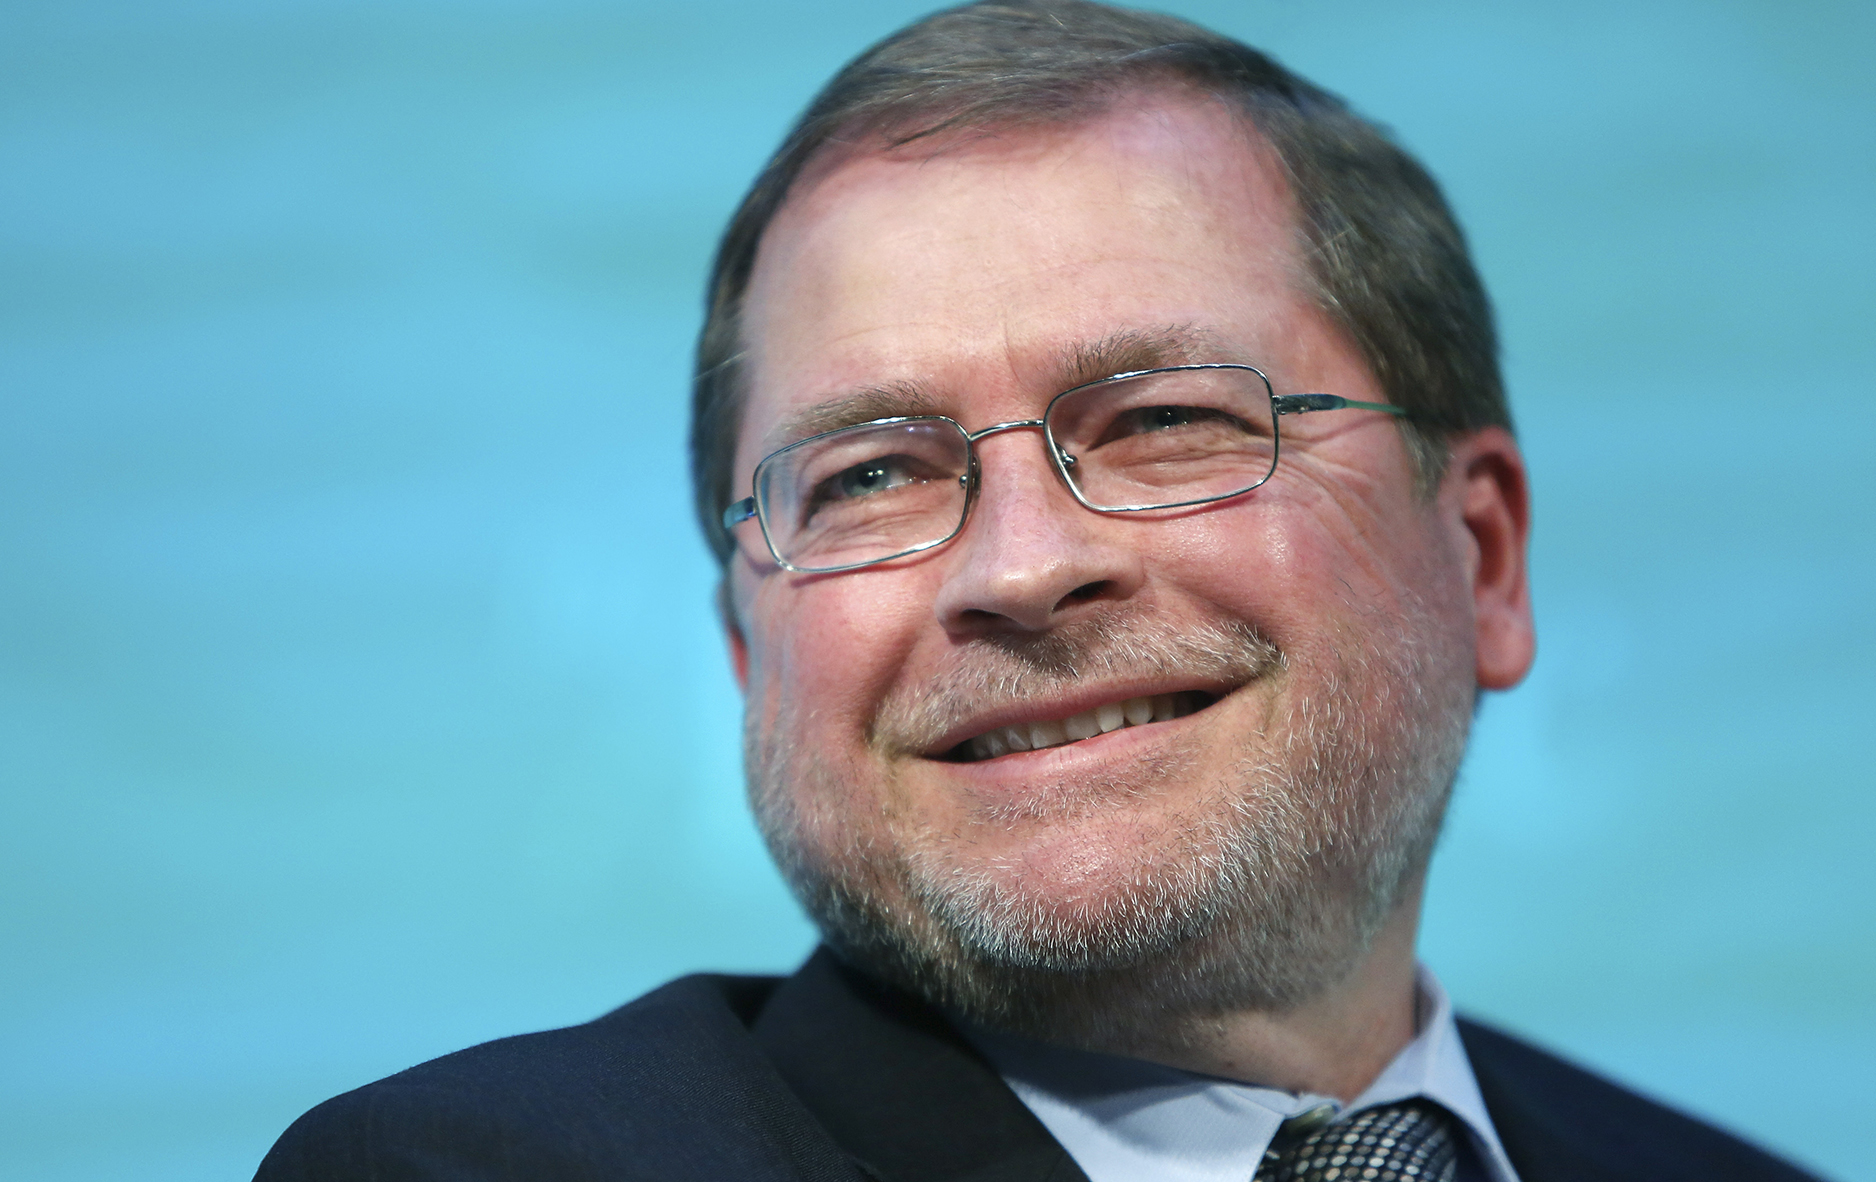 Grover Norquist: Repealing Trump's tax cuts would 'make us the least competitive nation in the world'